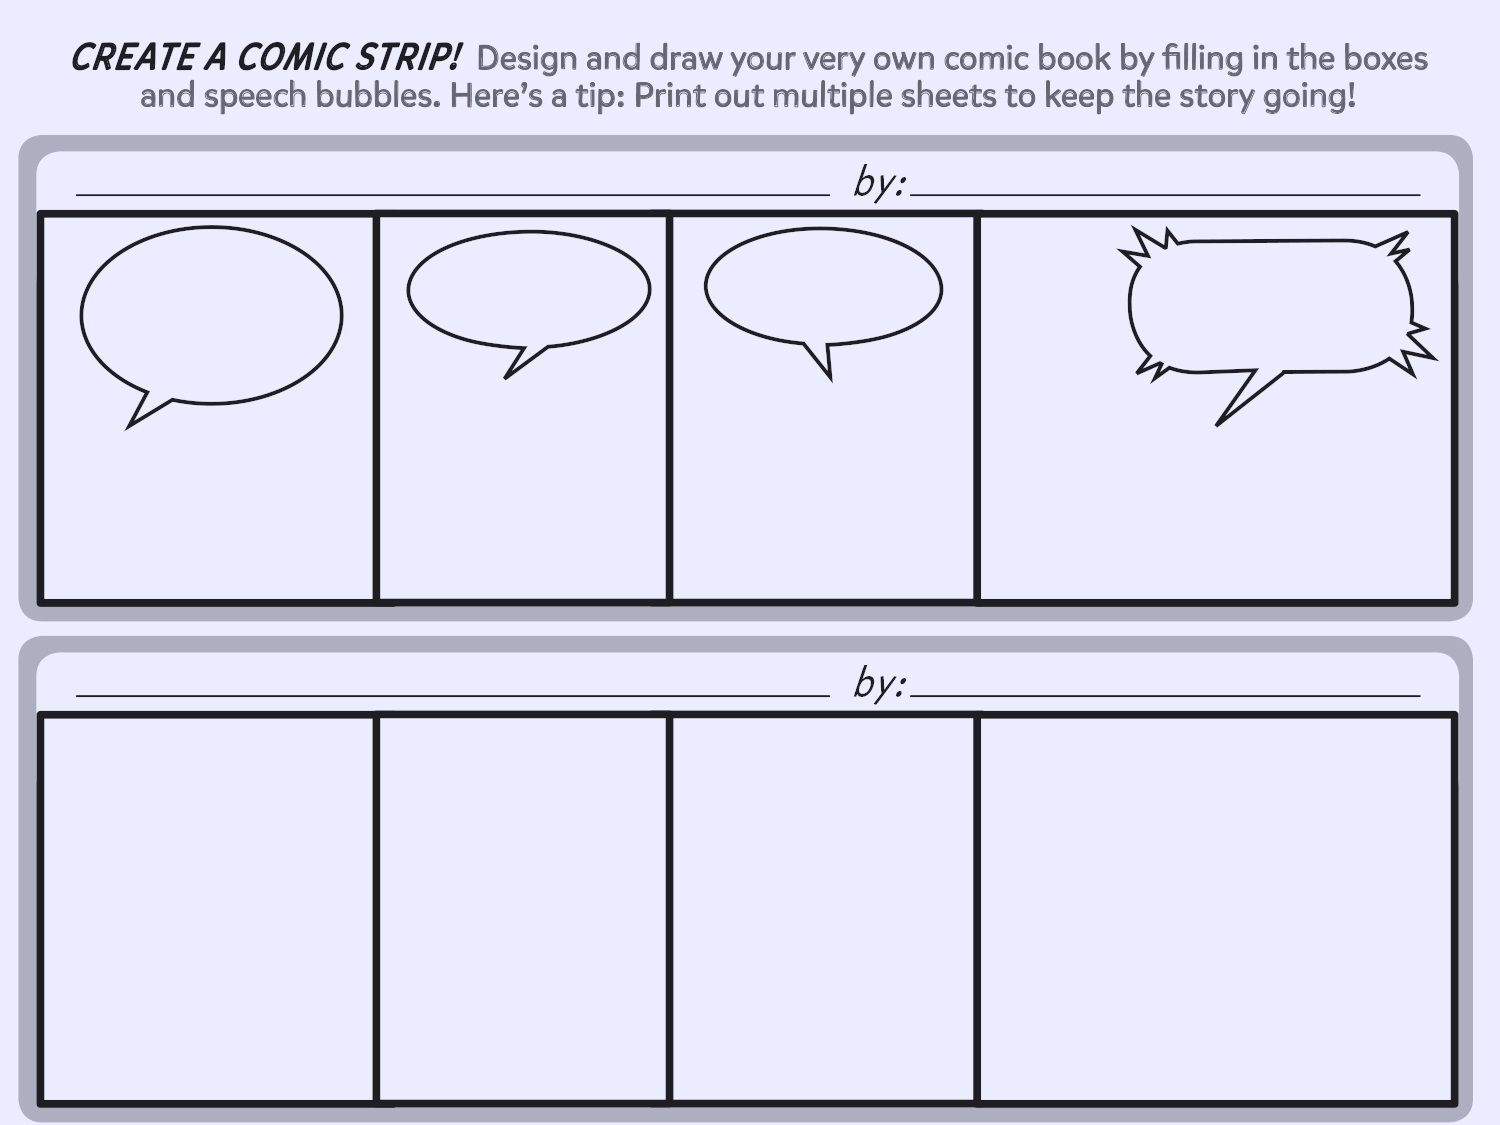 007 Sensational Comic Strip Layout For Word High Definition  Book Script Template Microsoft DocFull